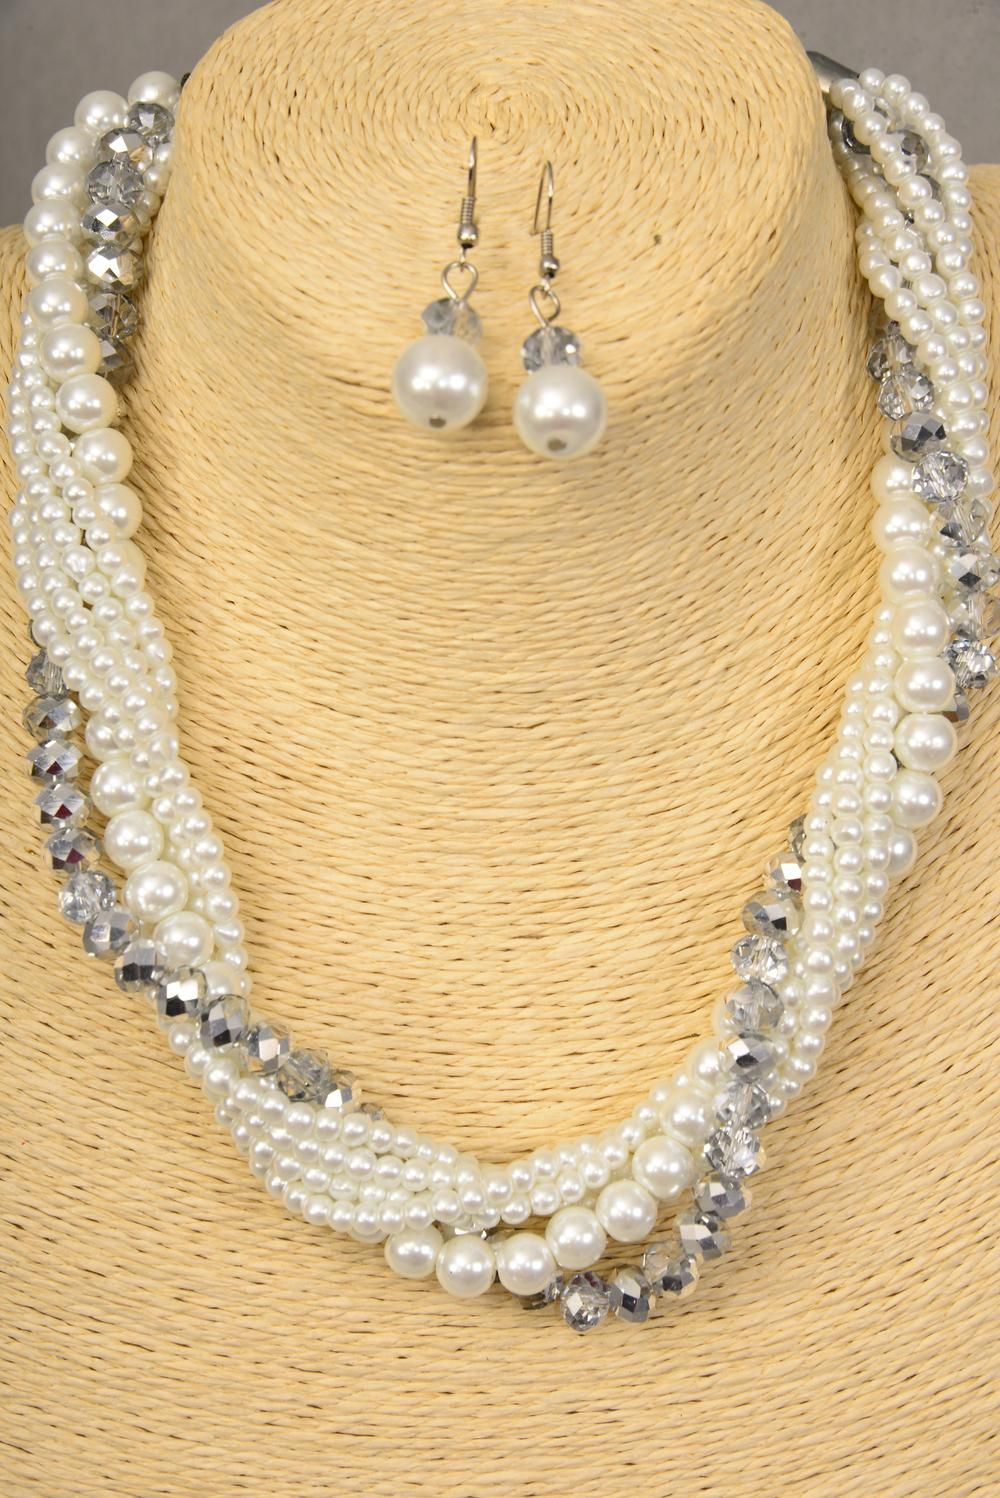 "Necklace Sets Bunch White Glass Pearls W Clear Glass Crystals/set **White** 16"" W Extension Chain,hang Tag & Opp bag & UPC Code -"